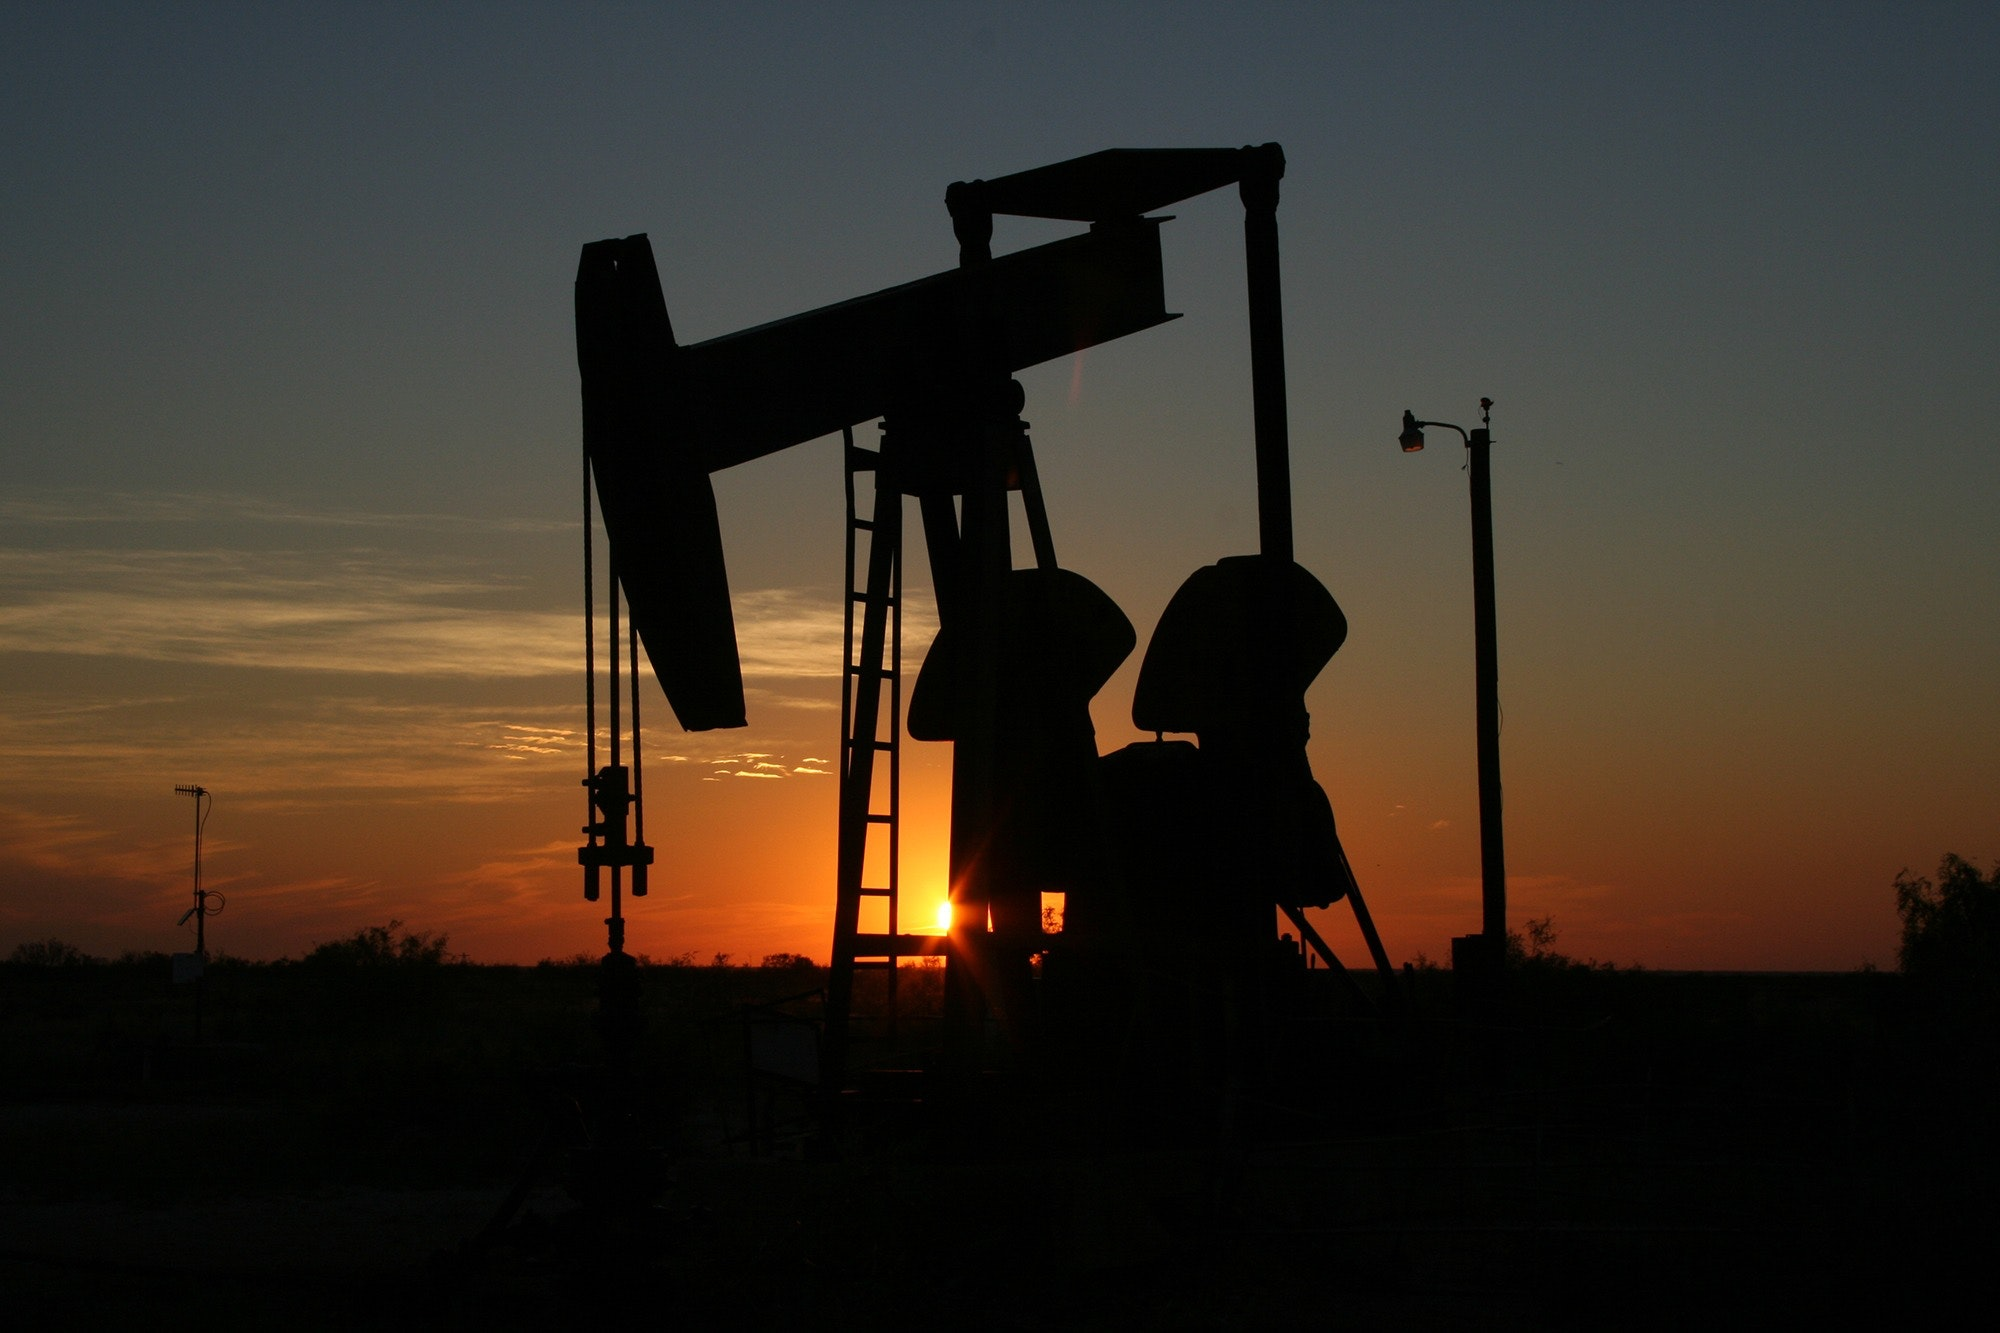 Supply Chain News: Analysis Predicts Oil and Diesel Prices to Soar, Leading to Recession